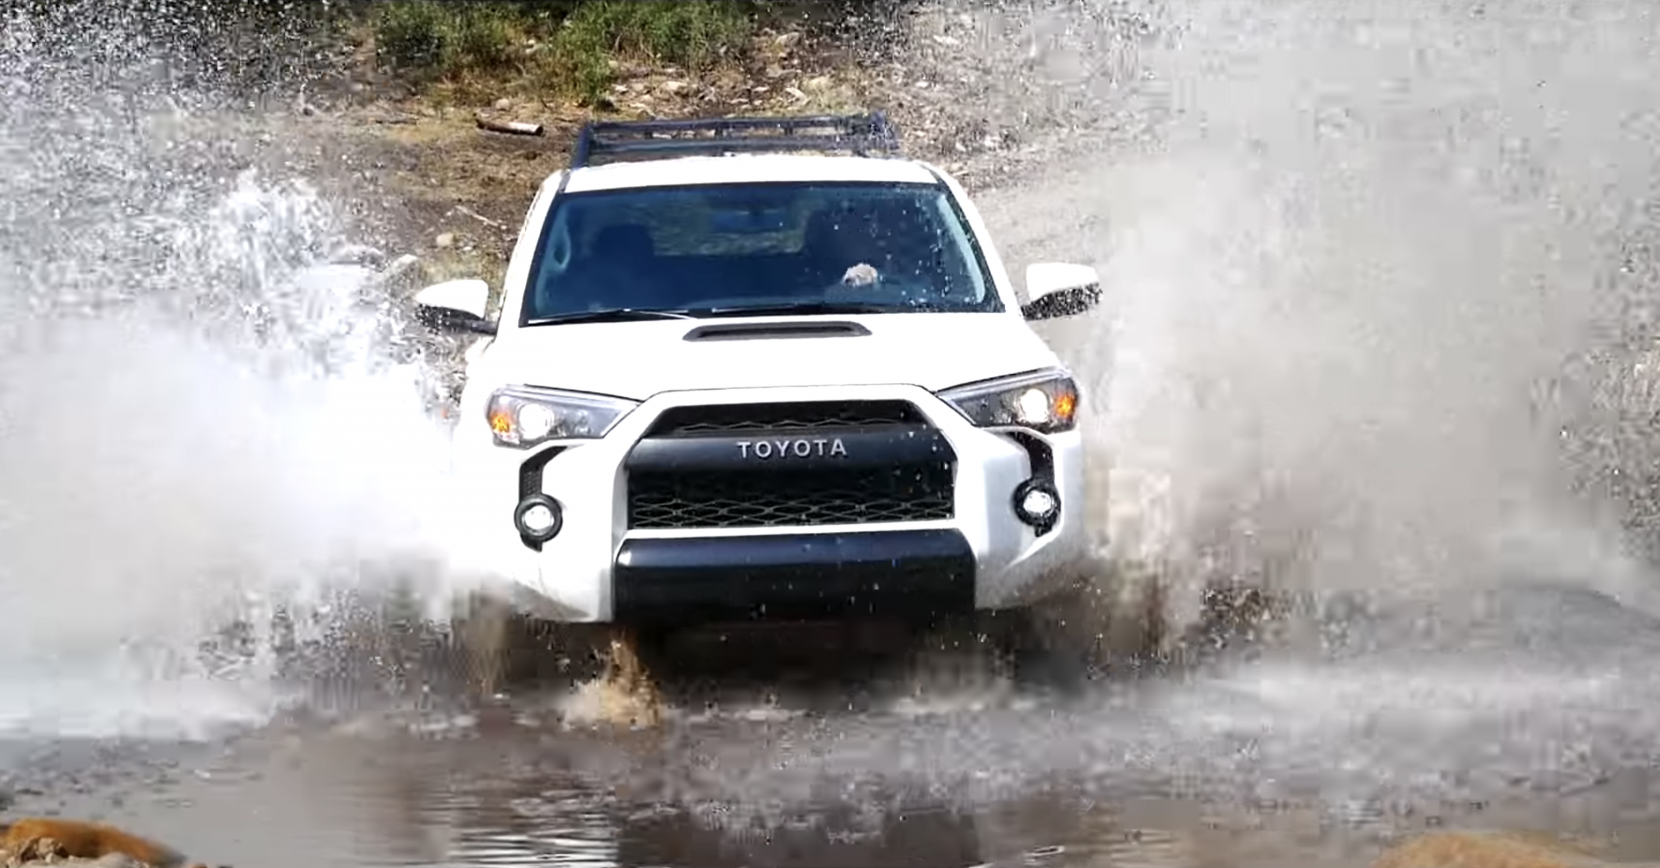 49 All New 2019 Toyota 4Runner Trd Pro Review Performance by 2019 Toyota 4Runner Trd Pro Review